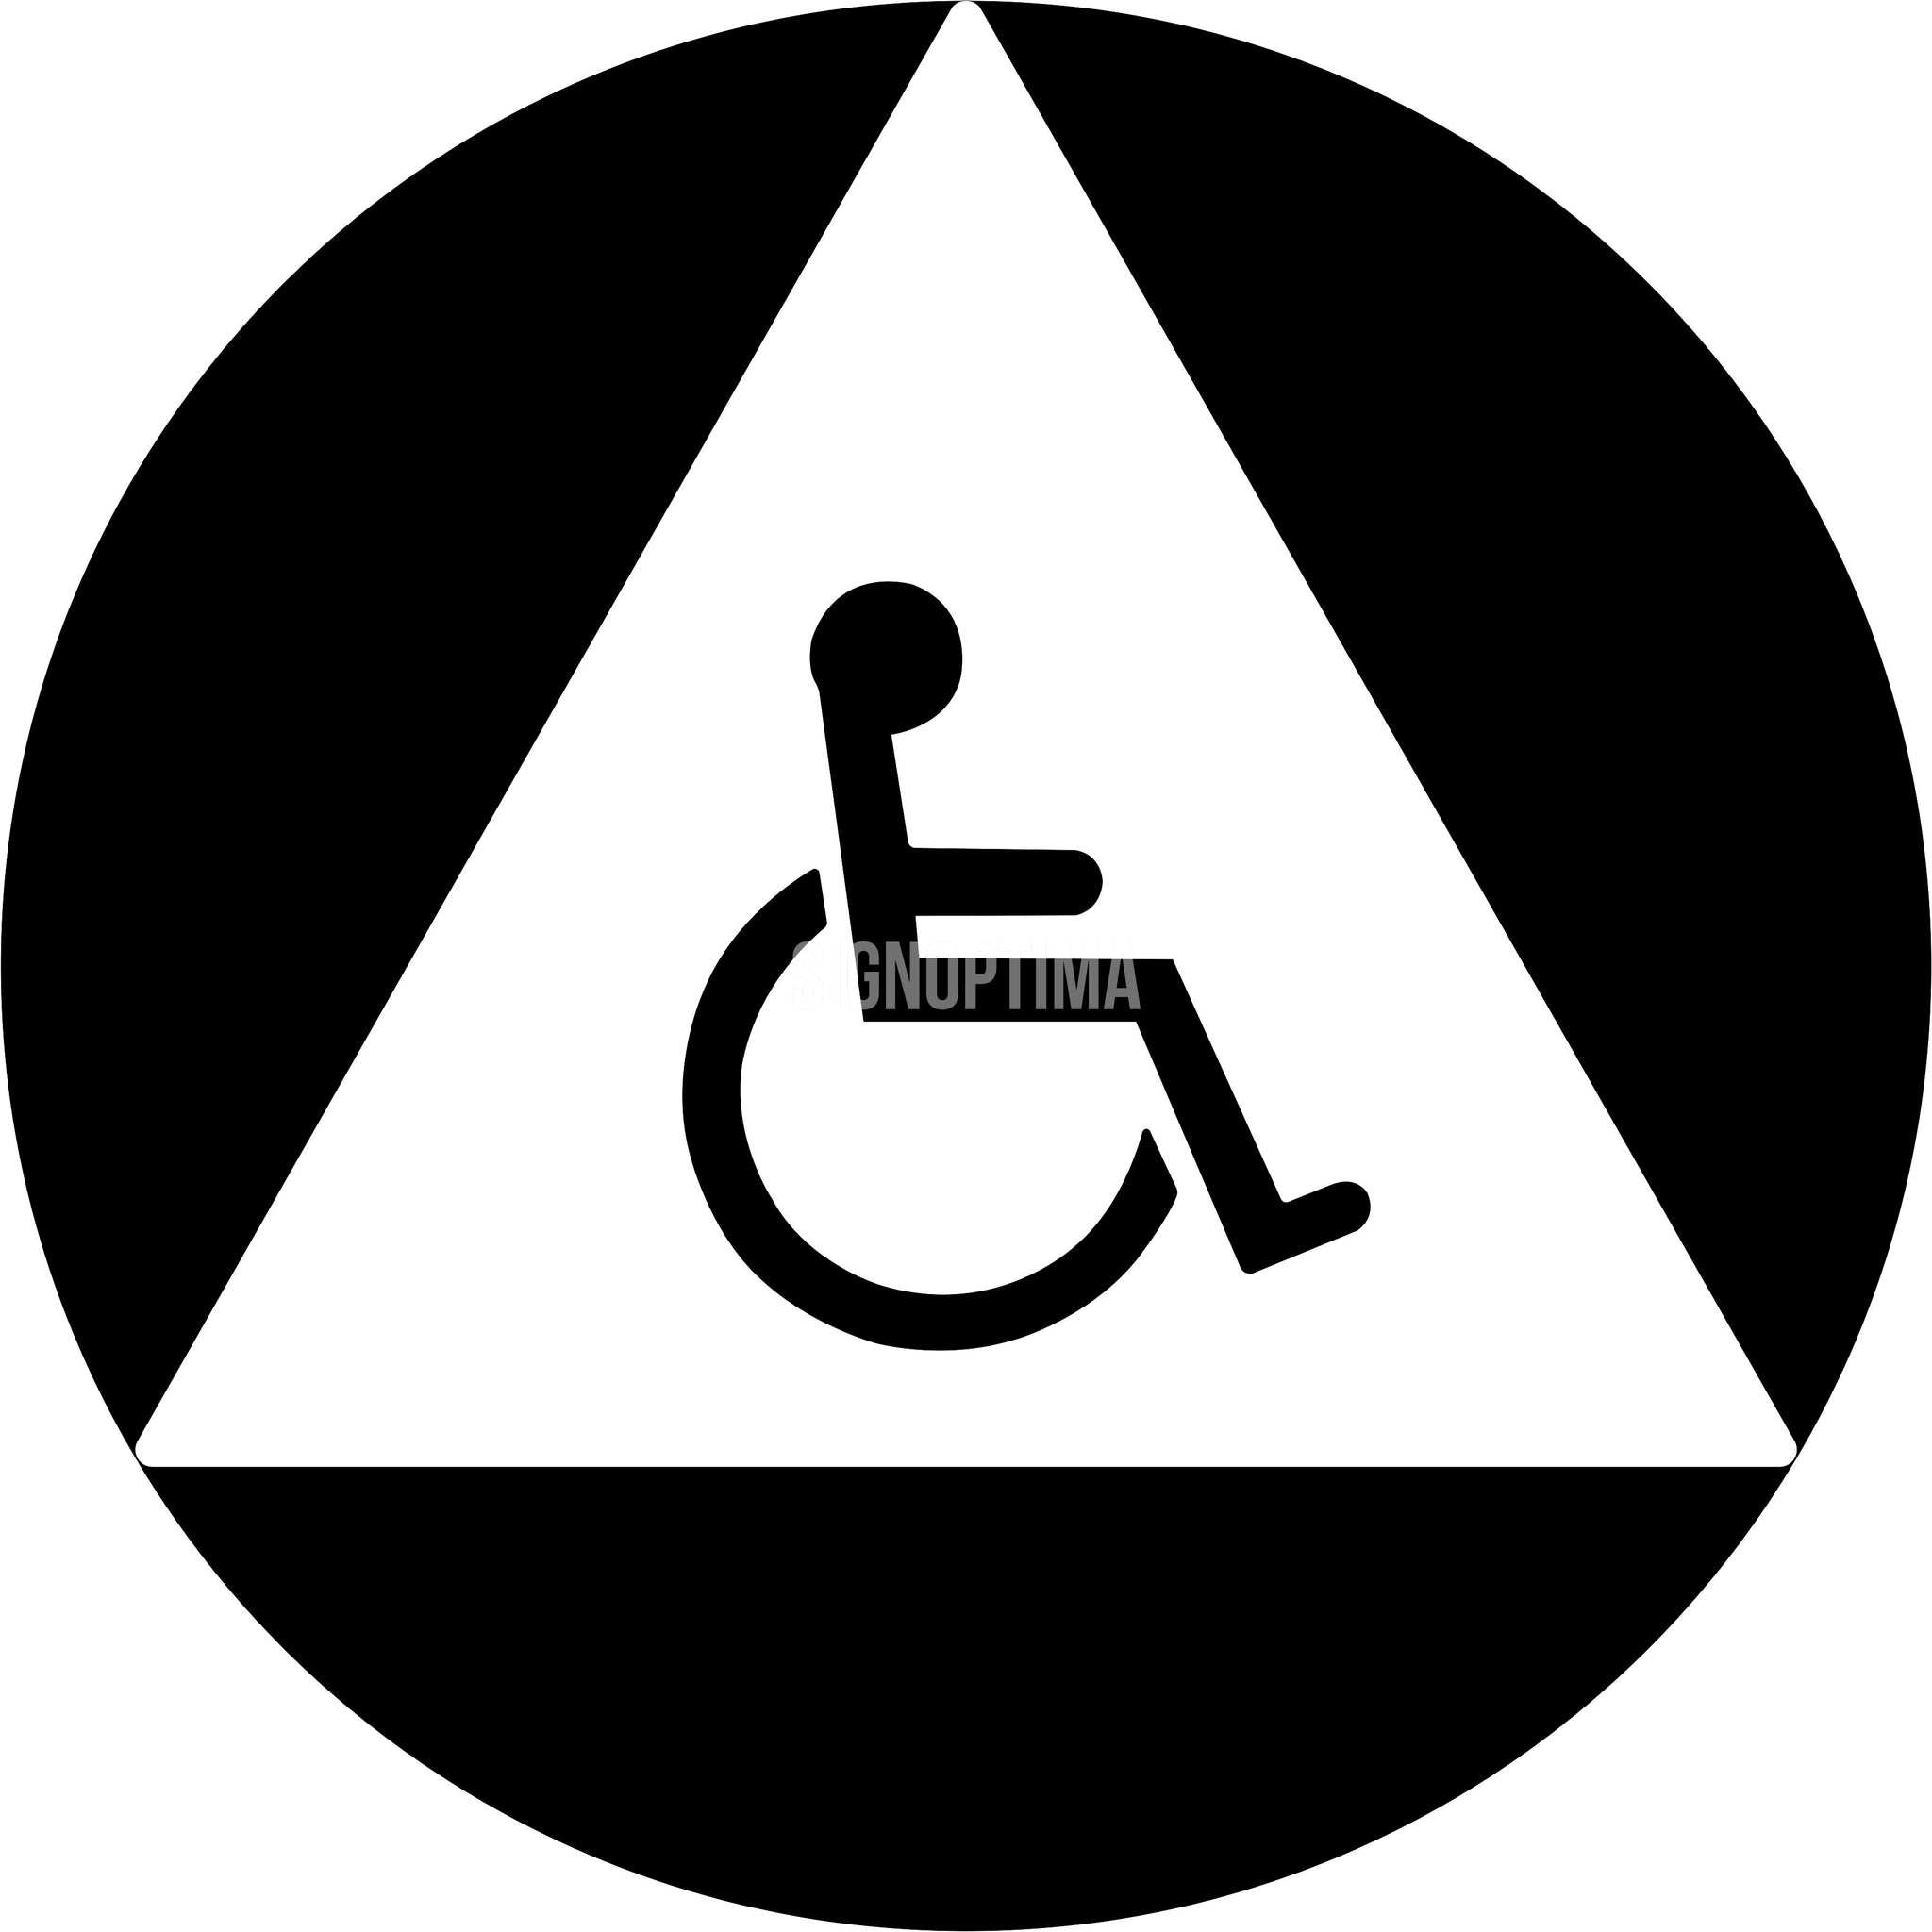 ADA Compliant All Gender Unisex Accessible Restroom Sign ...